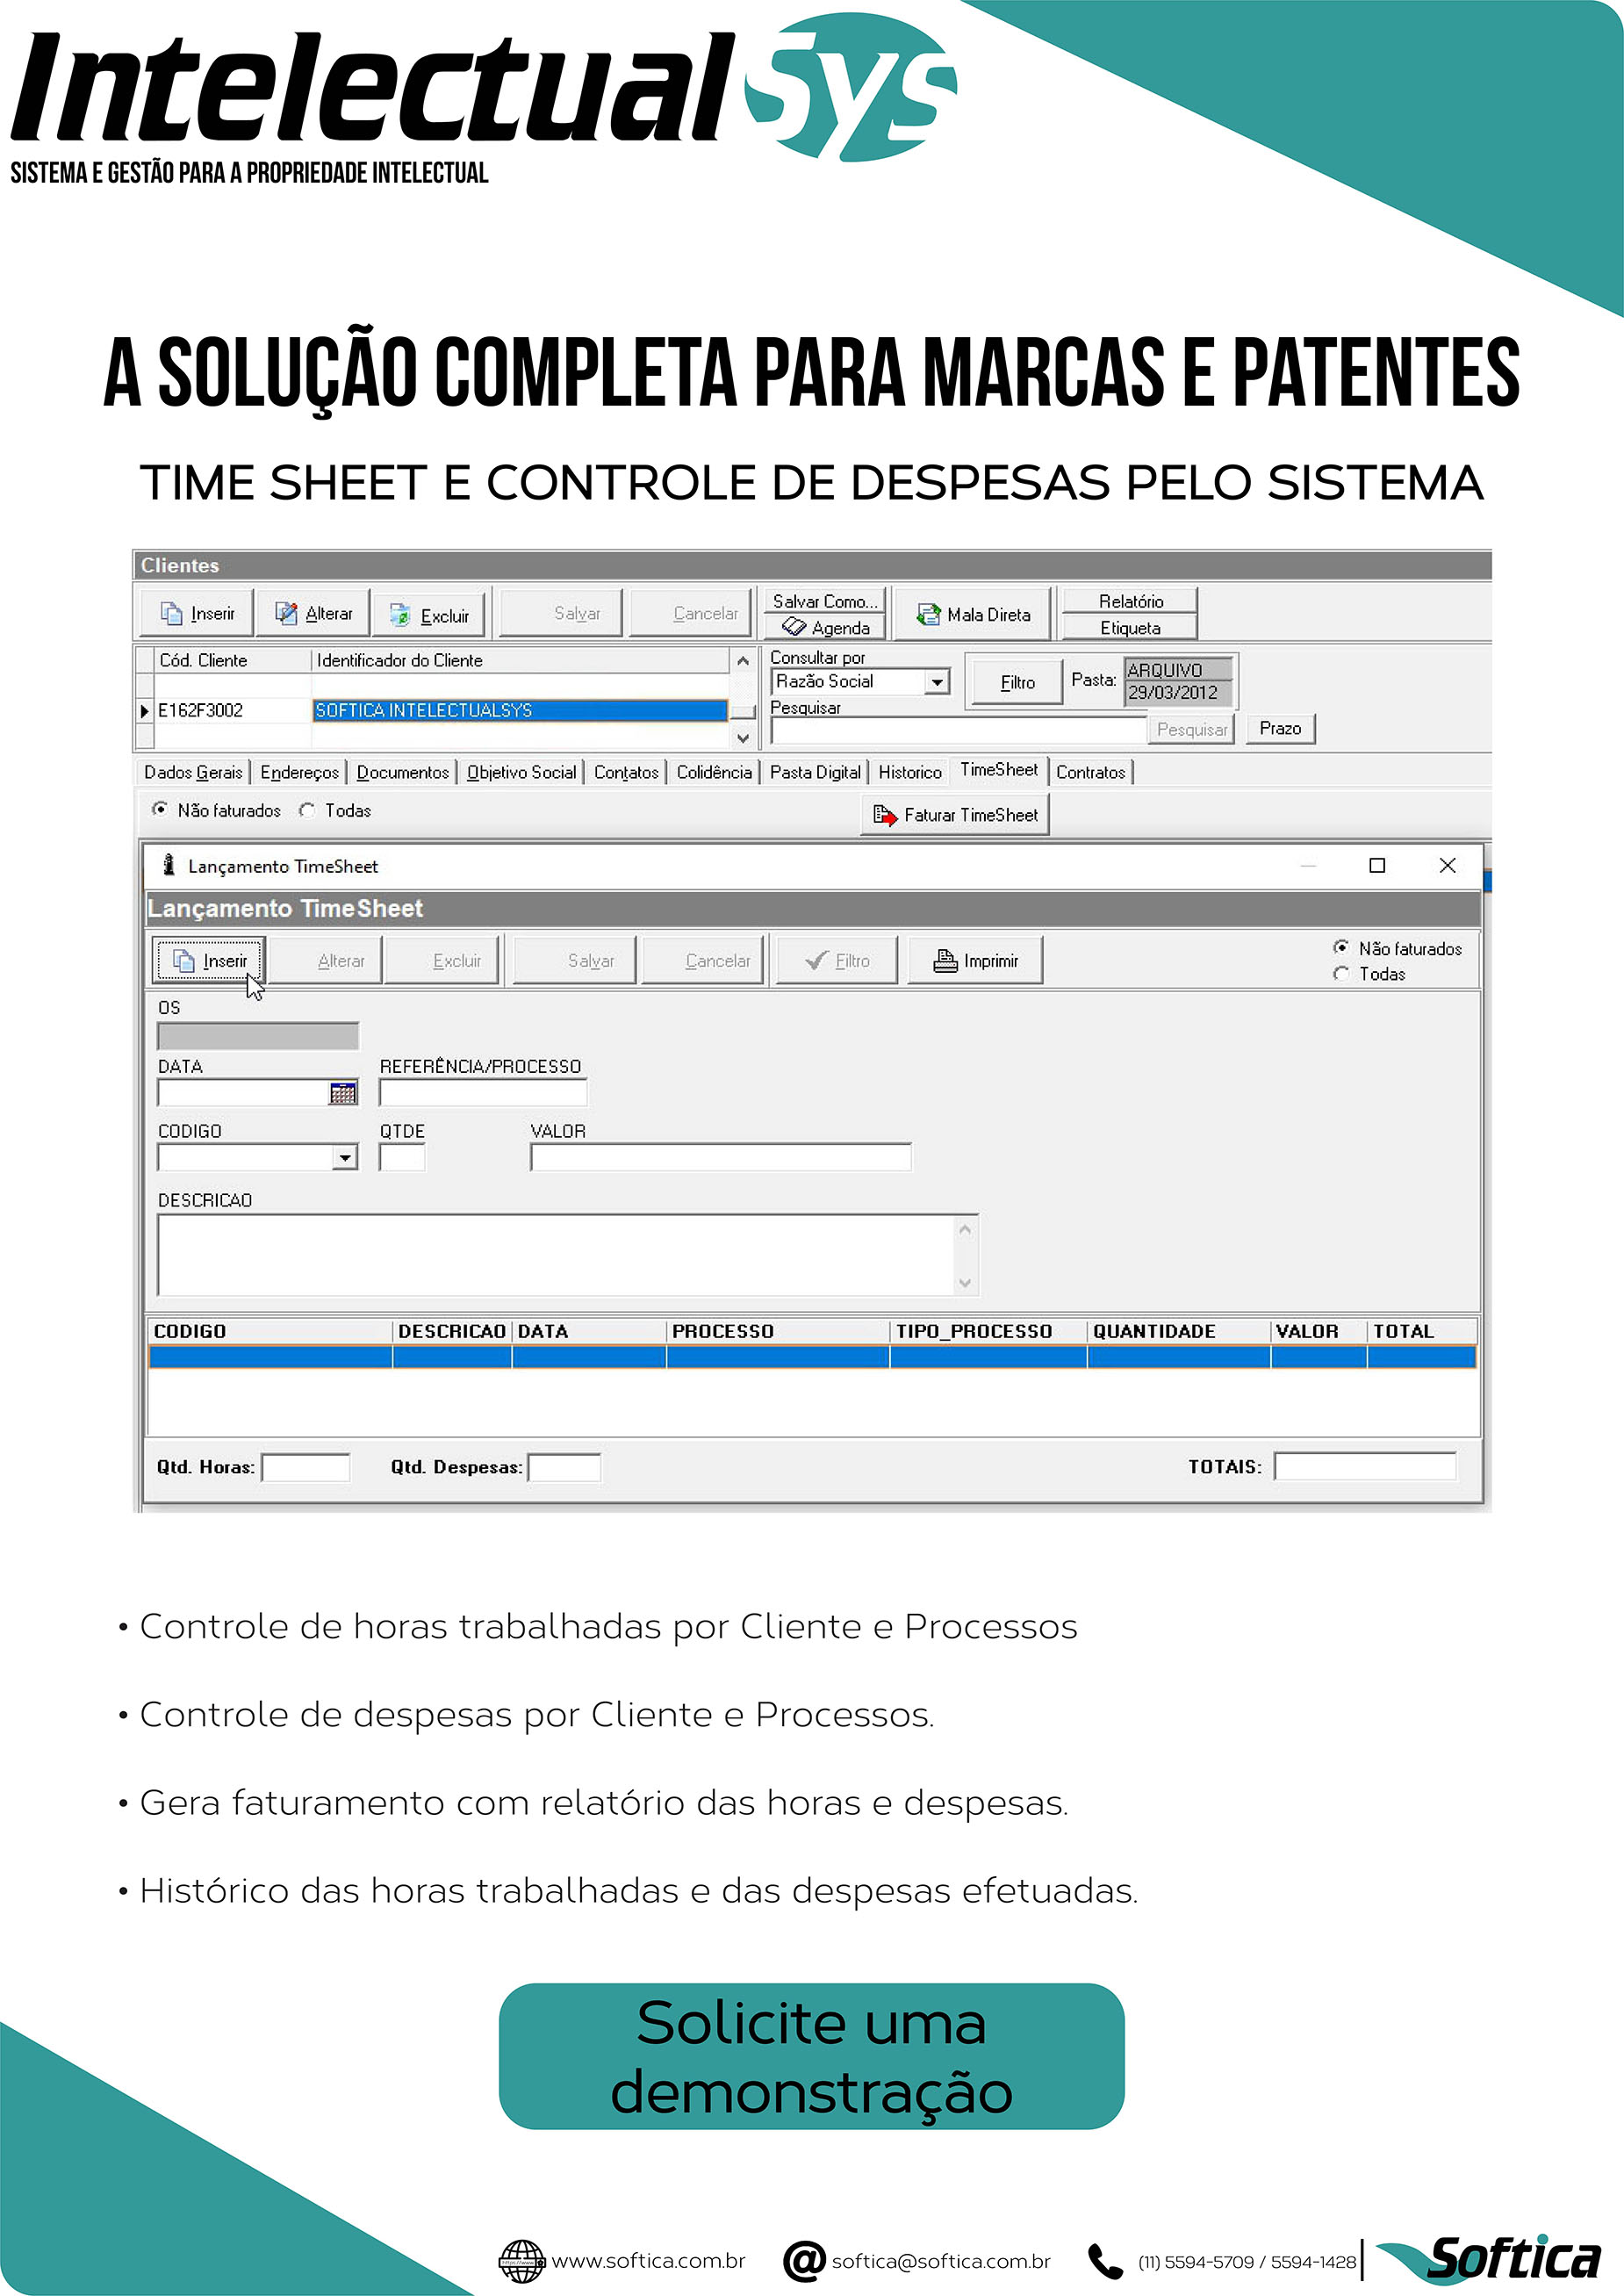 Folder ampliado de processos controlados pelo sistema do IntelectualSys